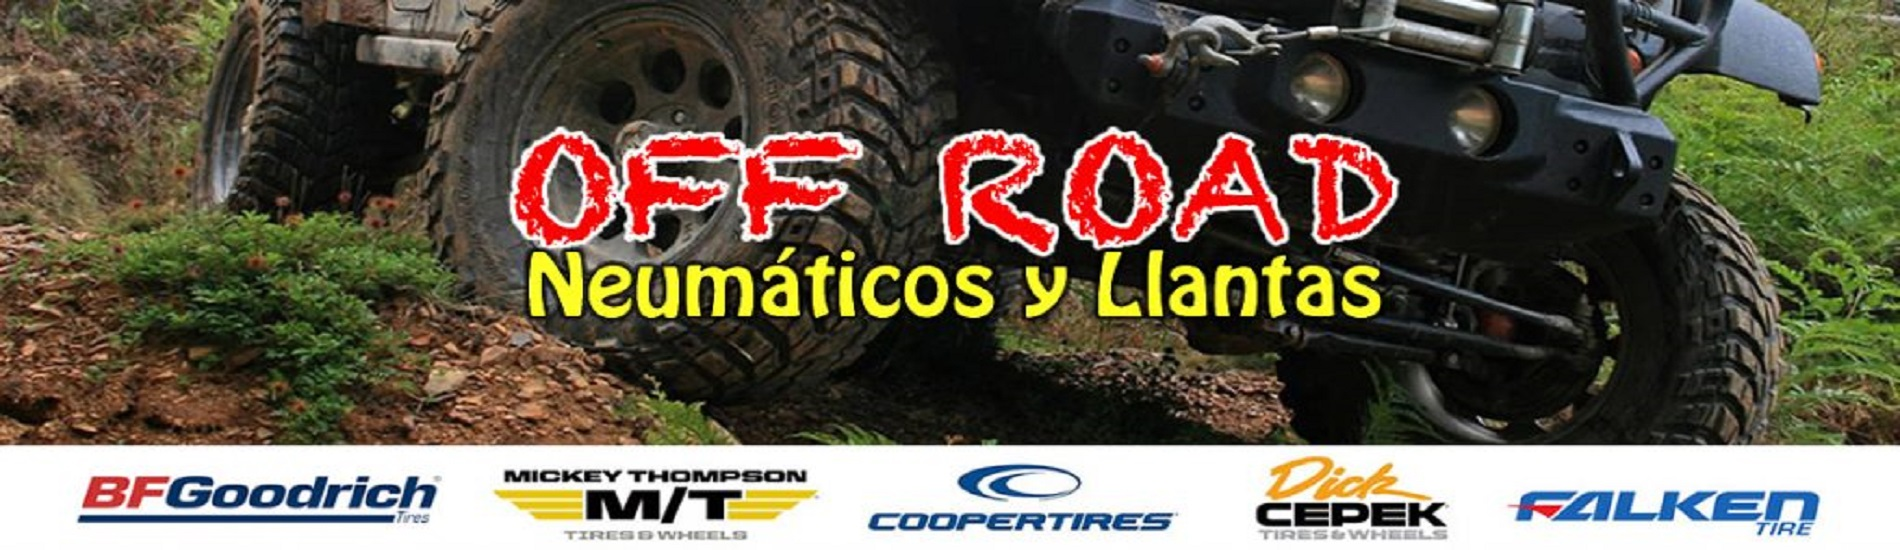 banner-offroad-1900x550